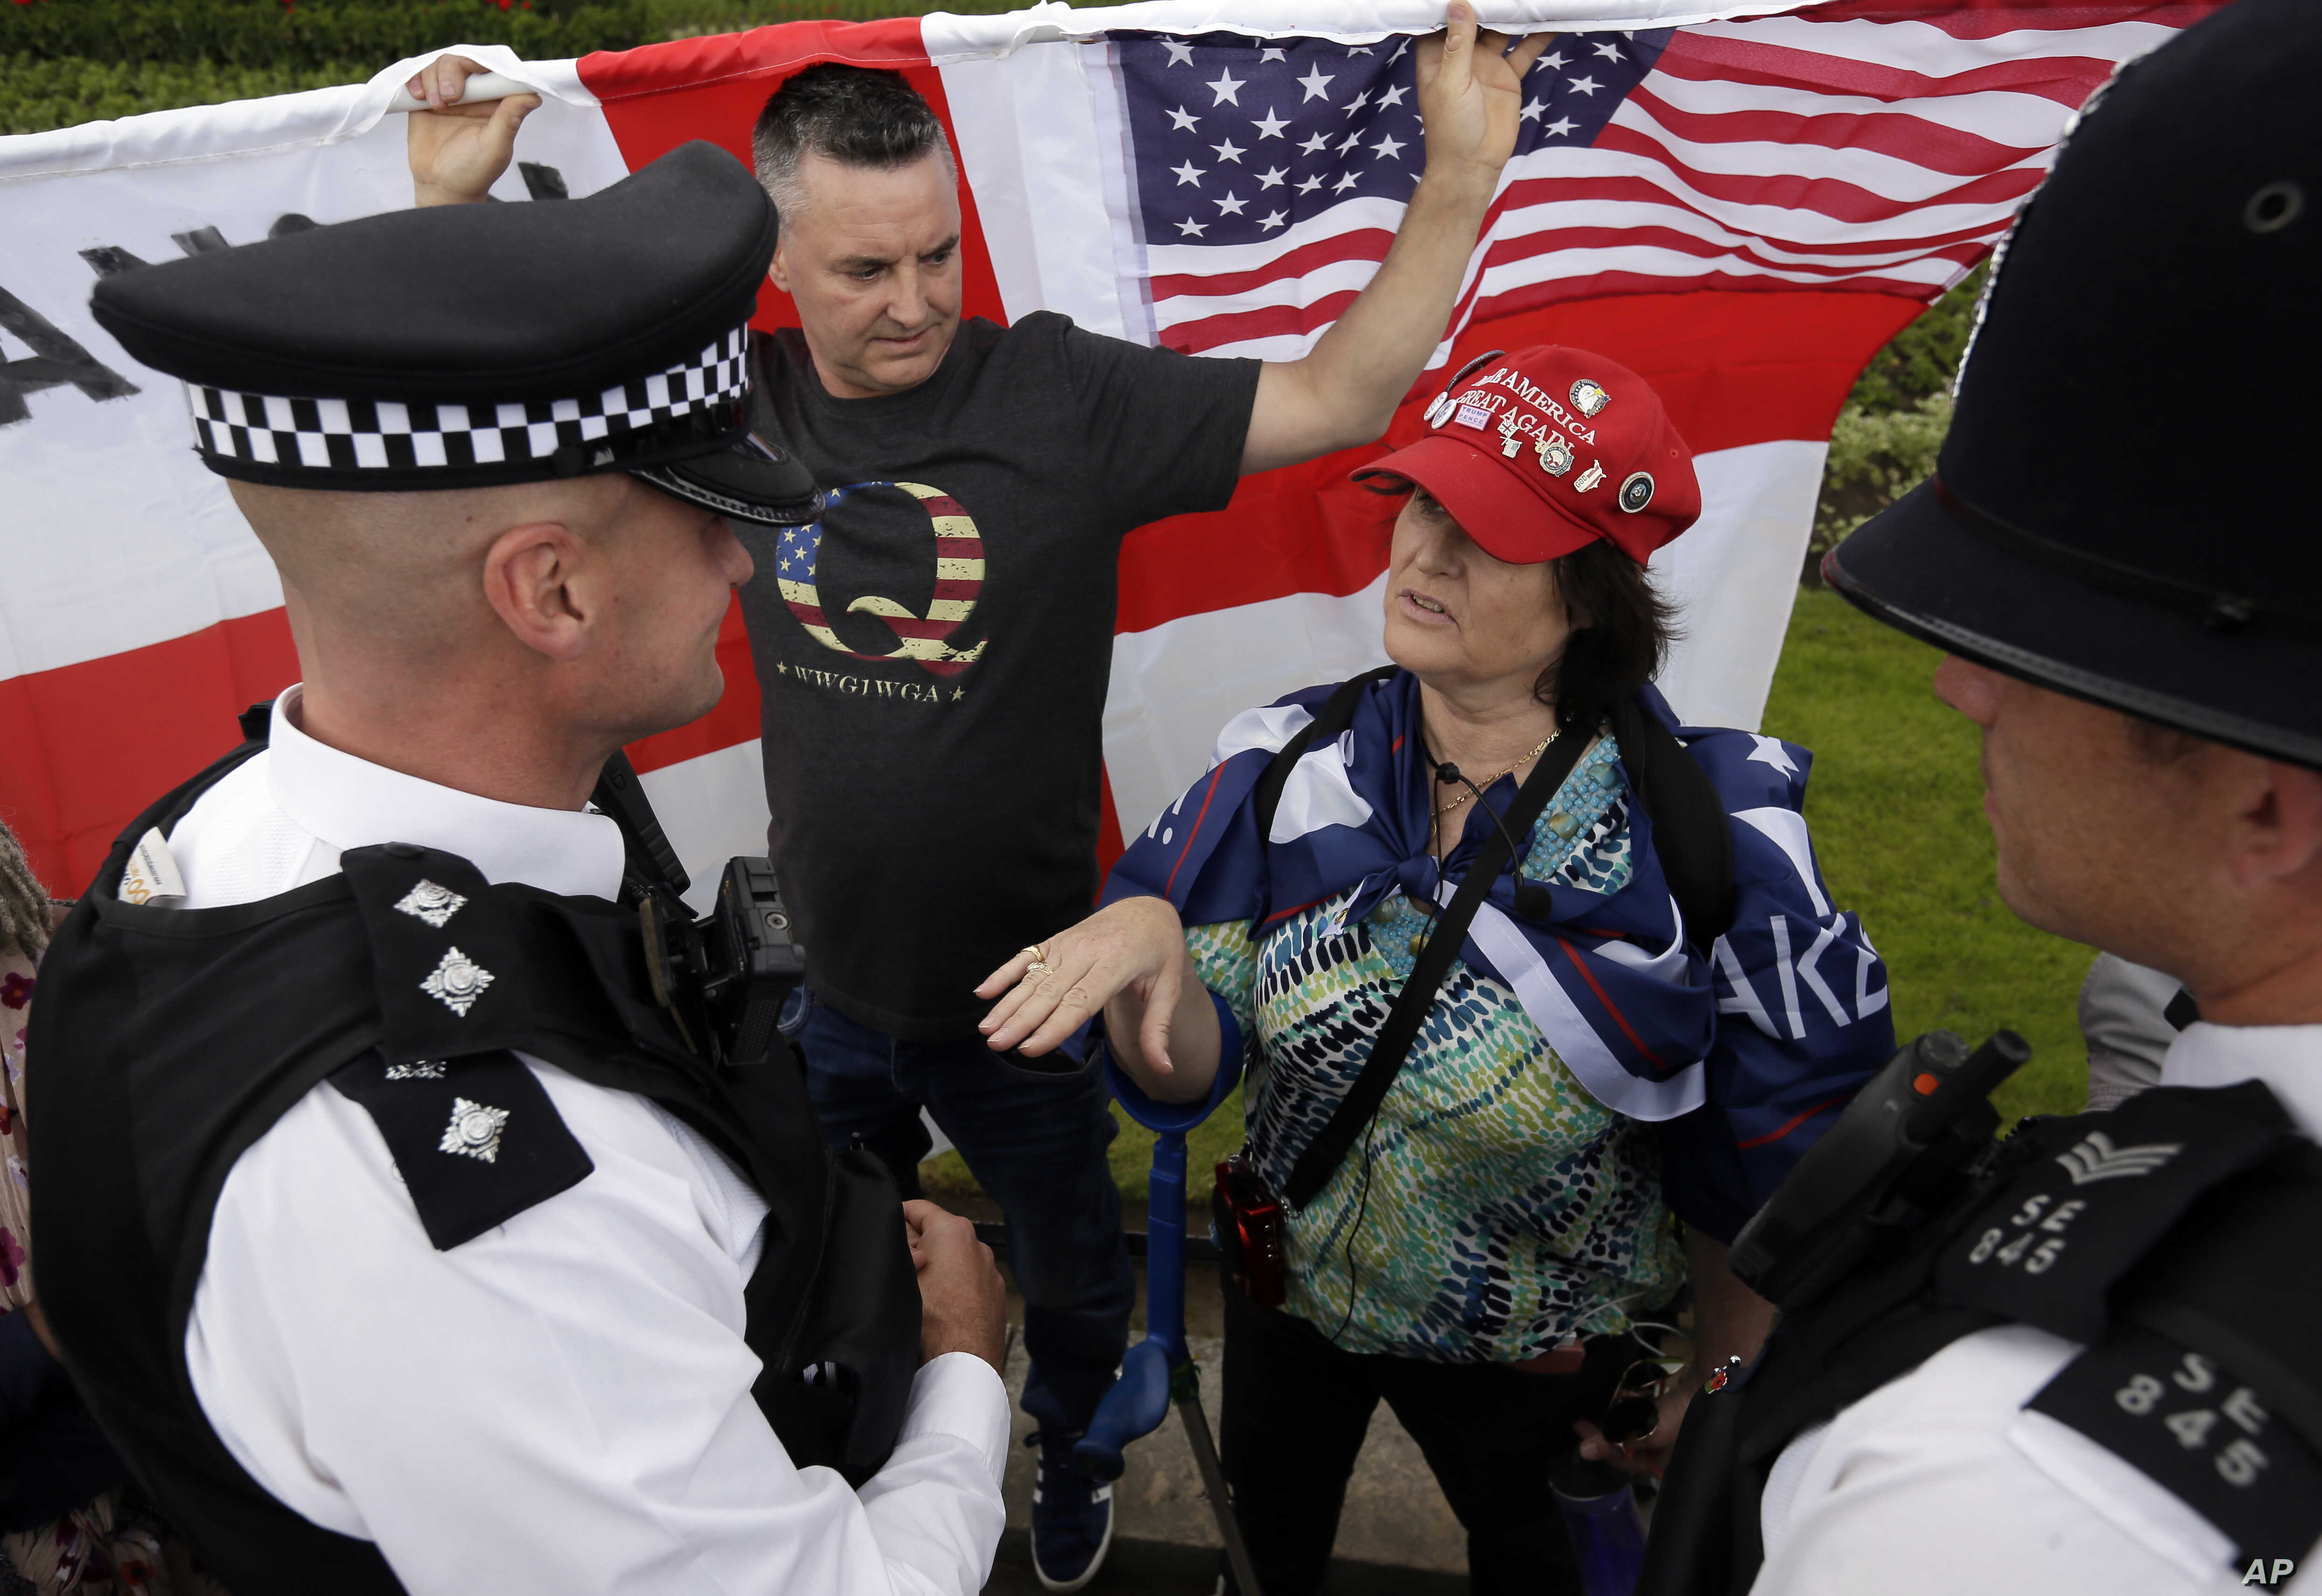 A fan of Donald Trump is asked to move out of the street by police outside Buckingham Palace in London, June 3, 2019.